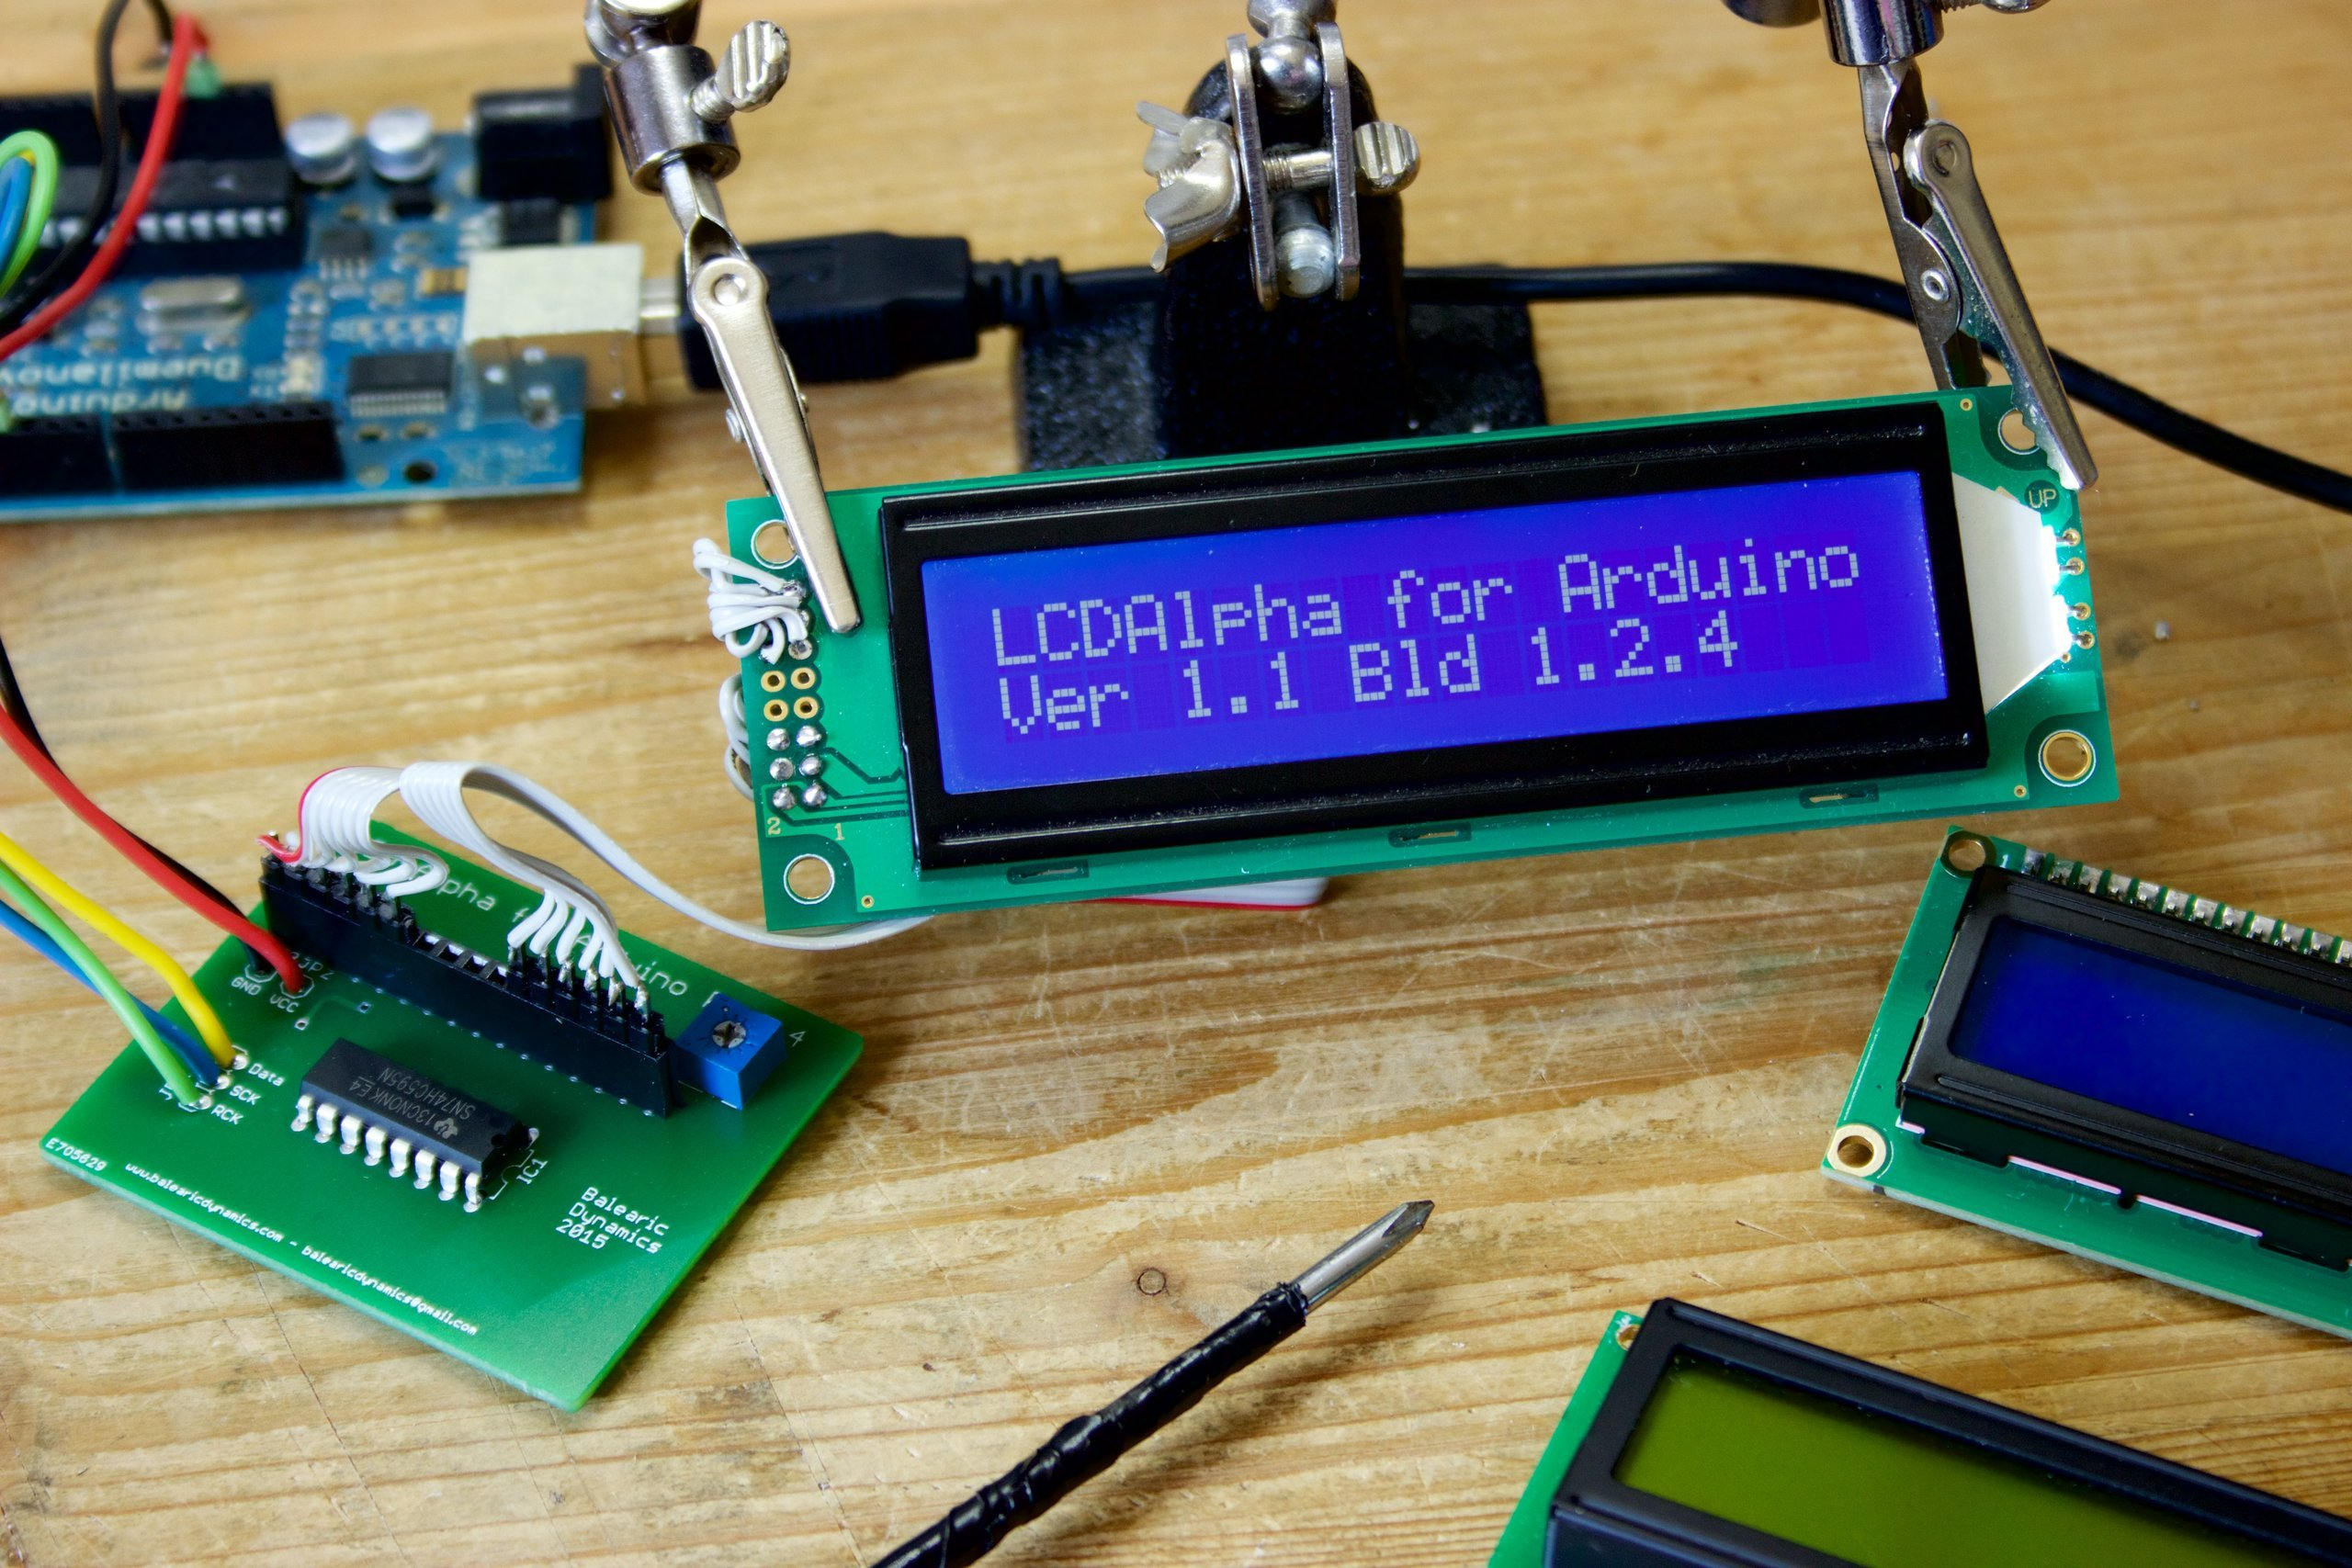 Lcd alpha arduino kit from alicemirror on tindie